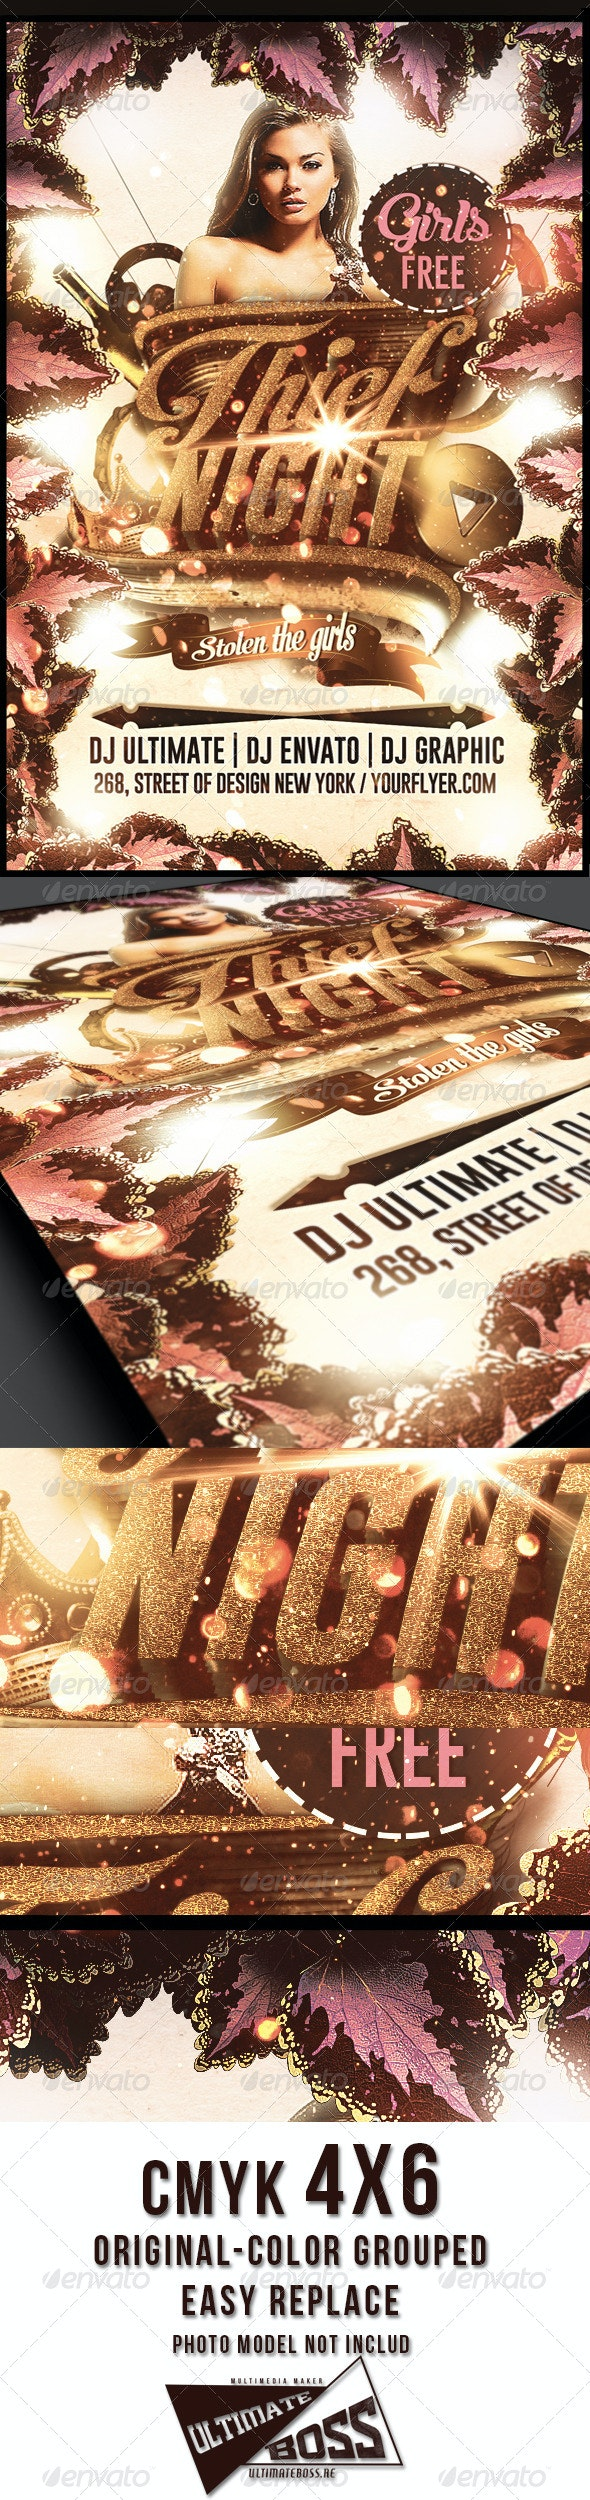 Thief Night Flyer template - Flyers Print Templates